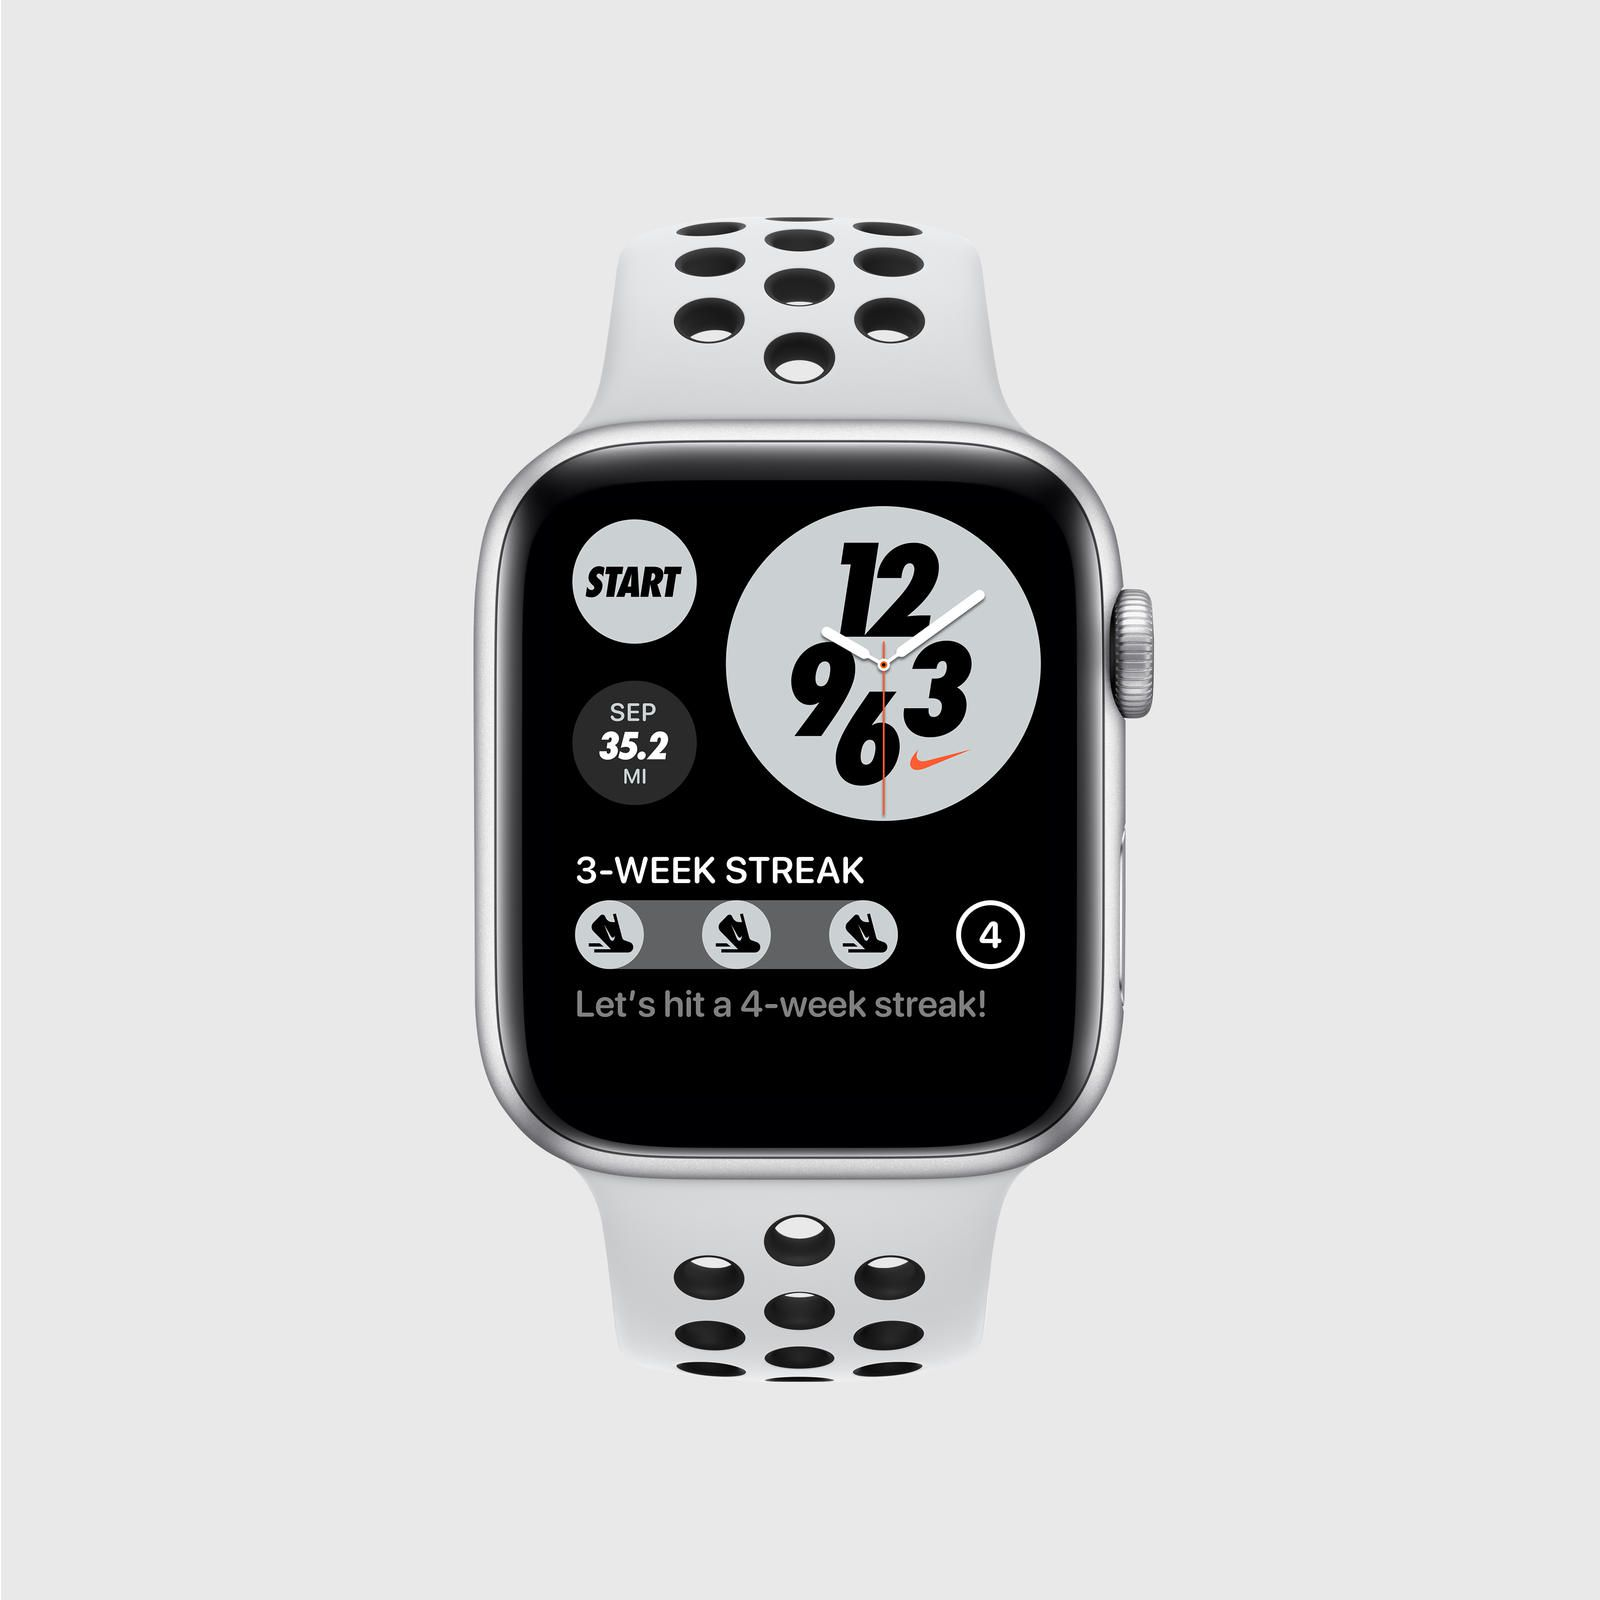 photo of Nike Run Club Update Brings a New Modular Watch Face, 'Twilight Mode,' and 'Streaks' image